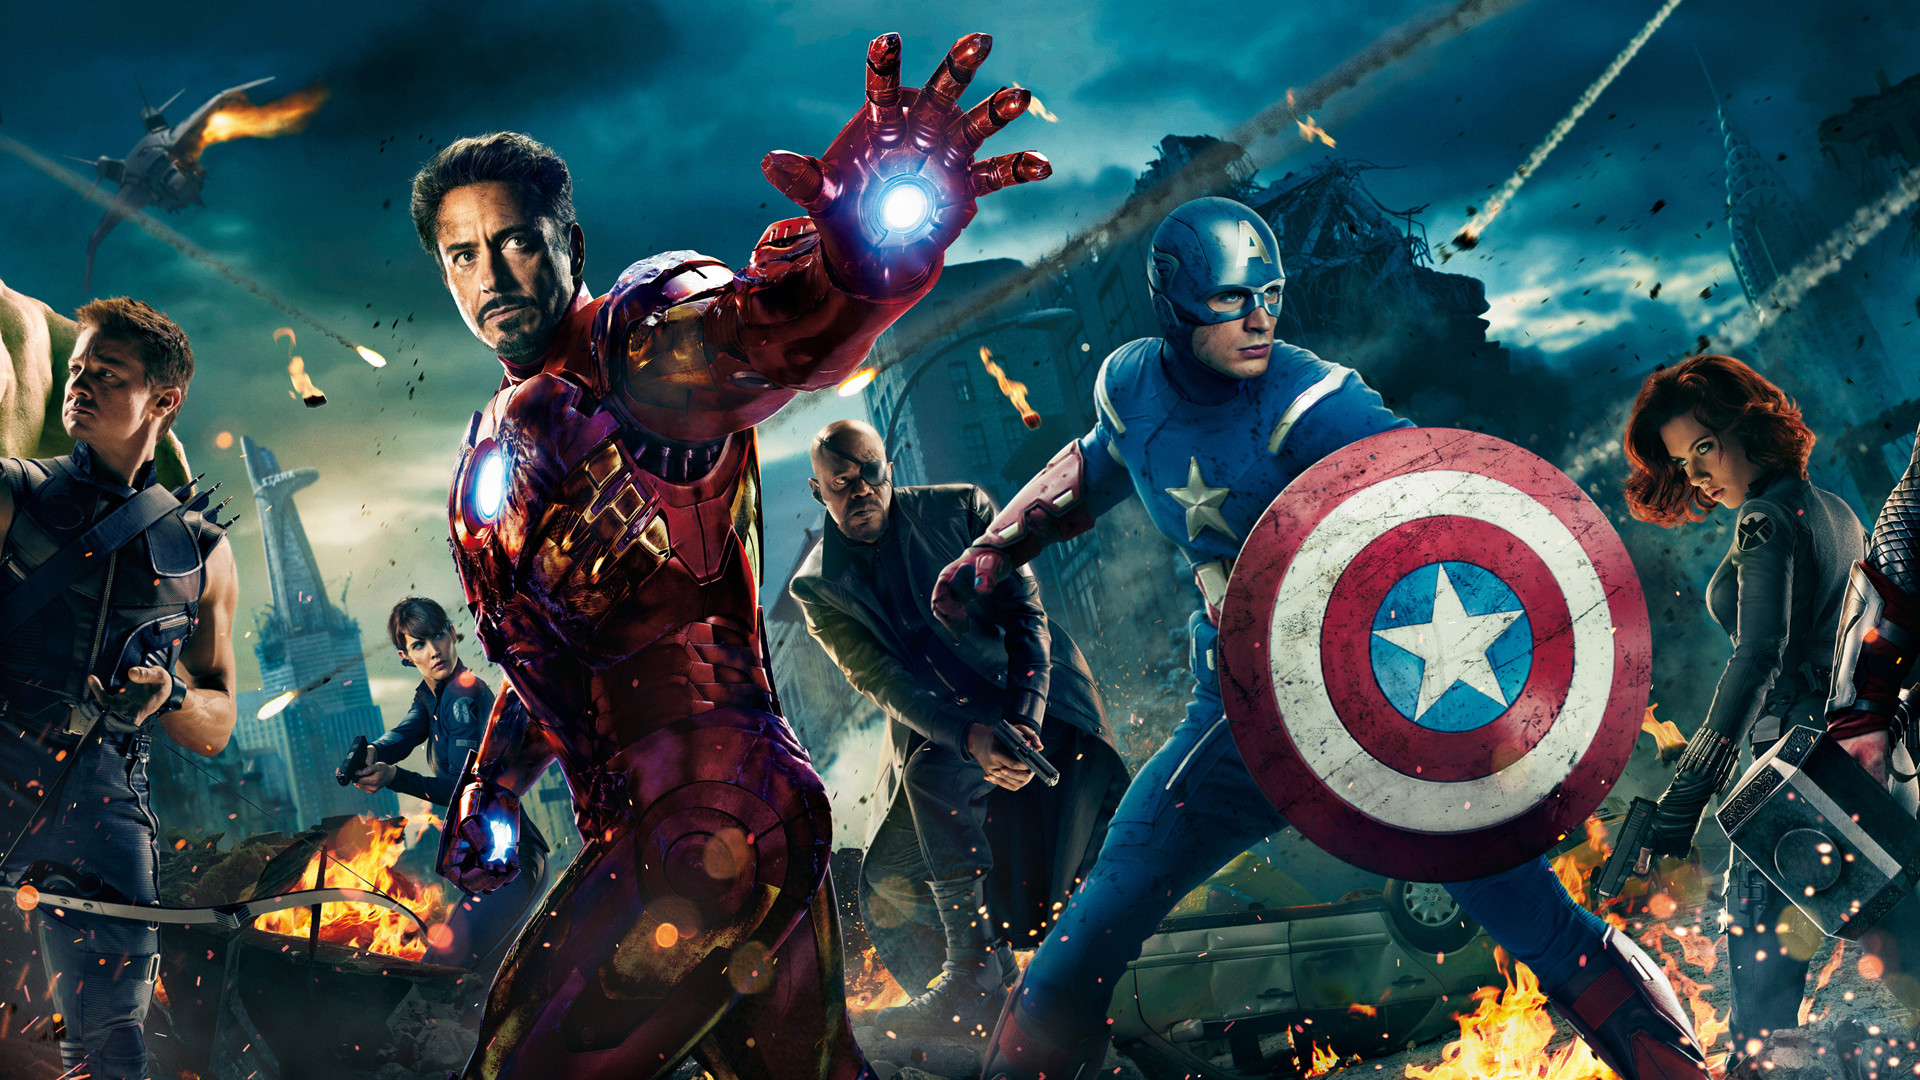 1920x1080 The Avengers Wallpapers | HD Wallpapers ...